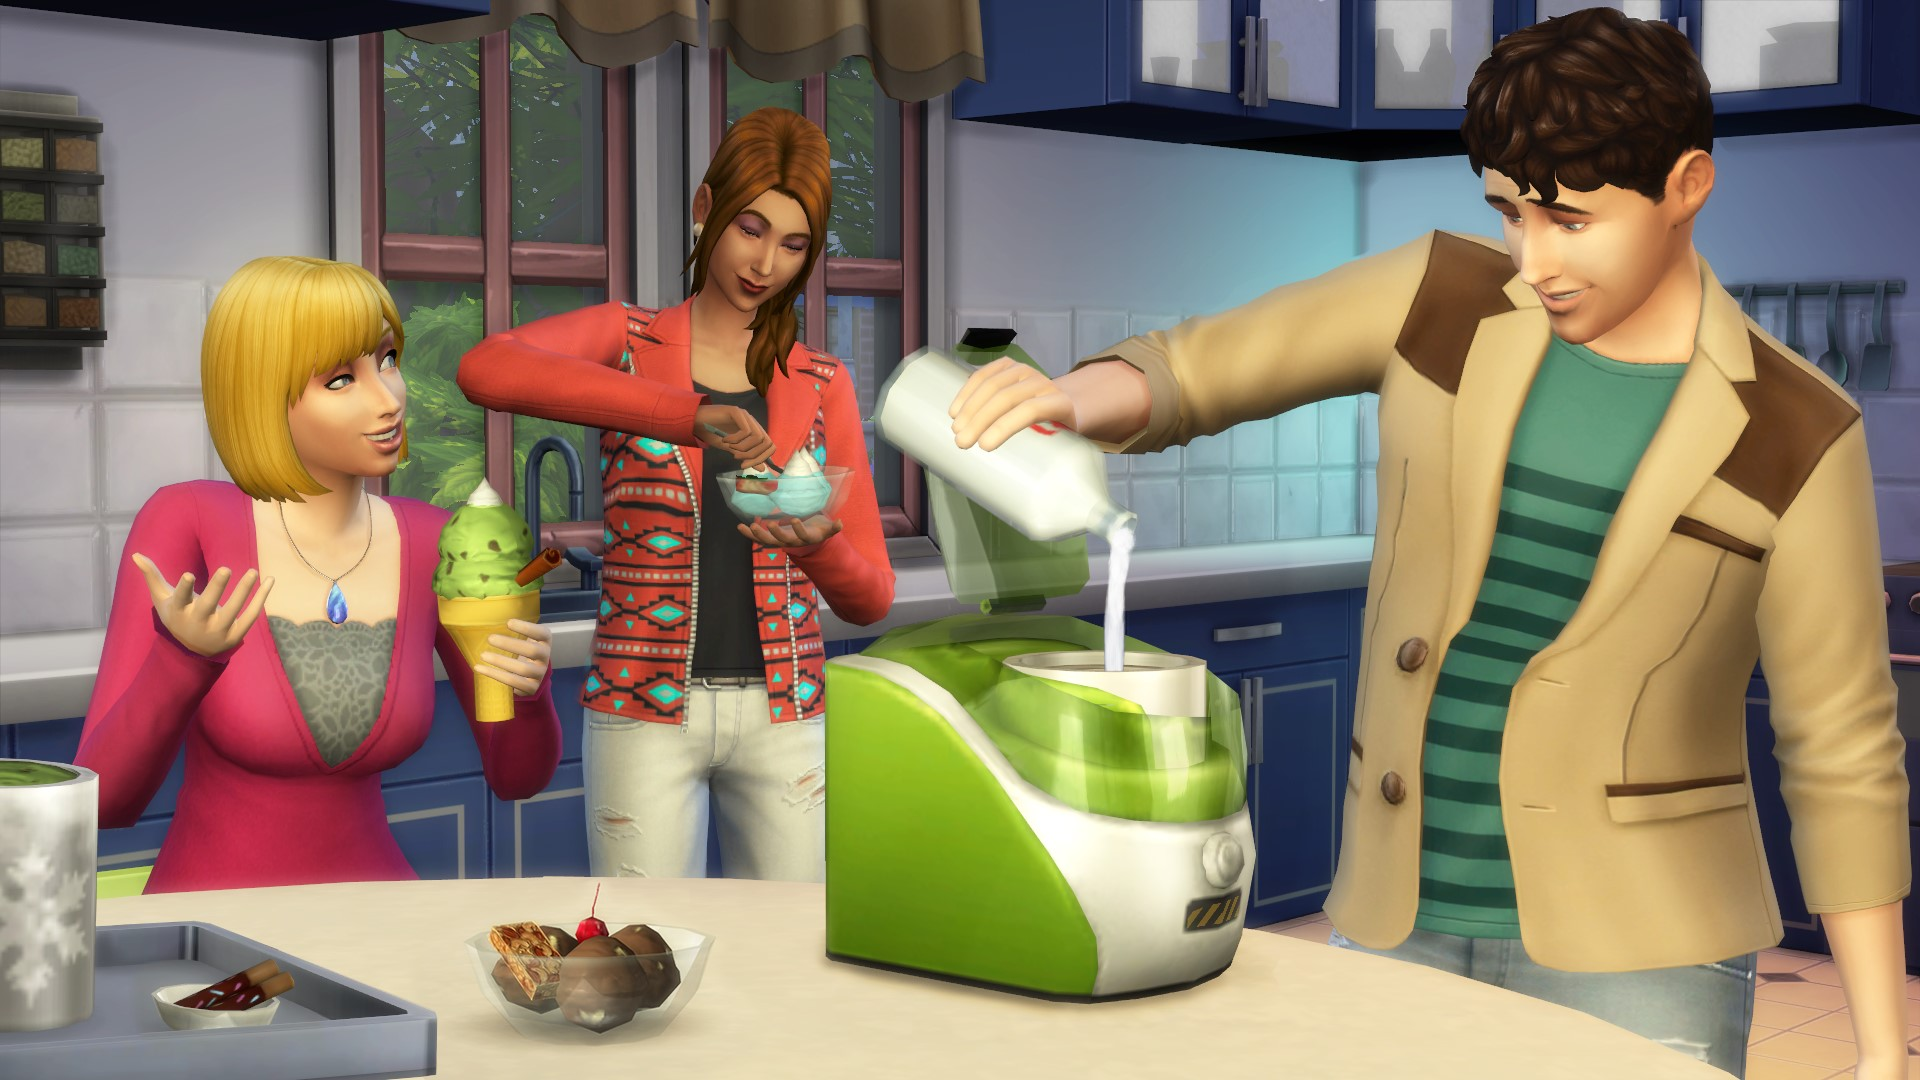 The Sims 4 Cool Kitchen Guide   SimsVIP